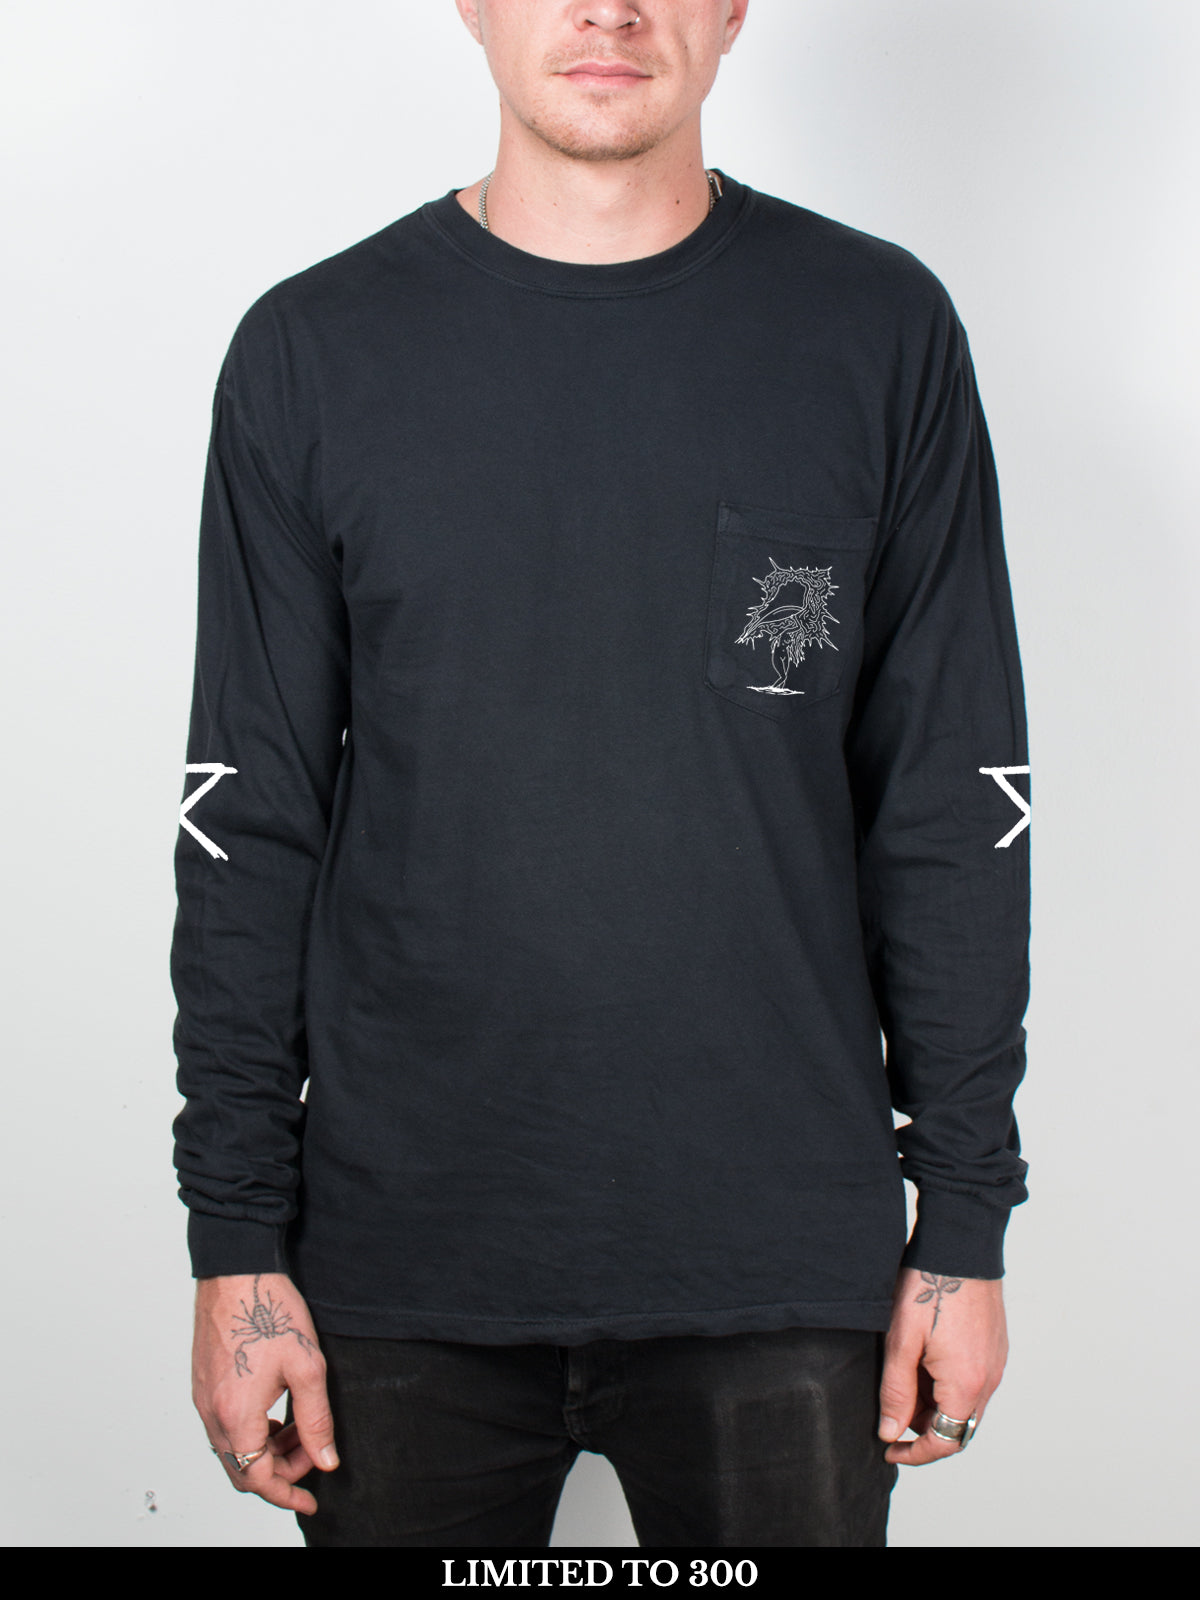 Circa Survive - The Amulet: Pigment Dyed Longsleeve + Free Album Download - Merch Limited